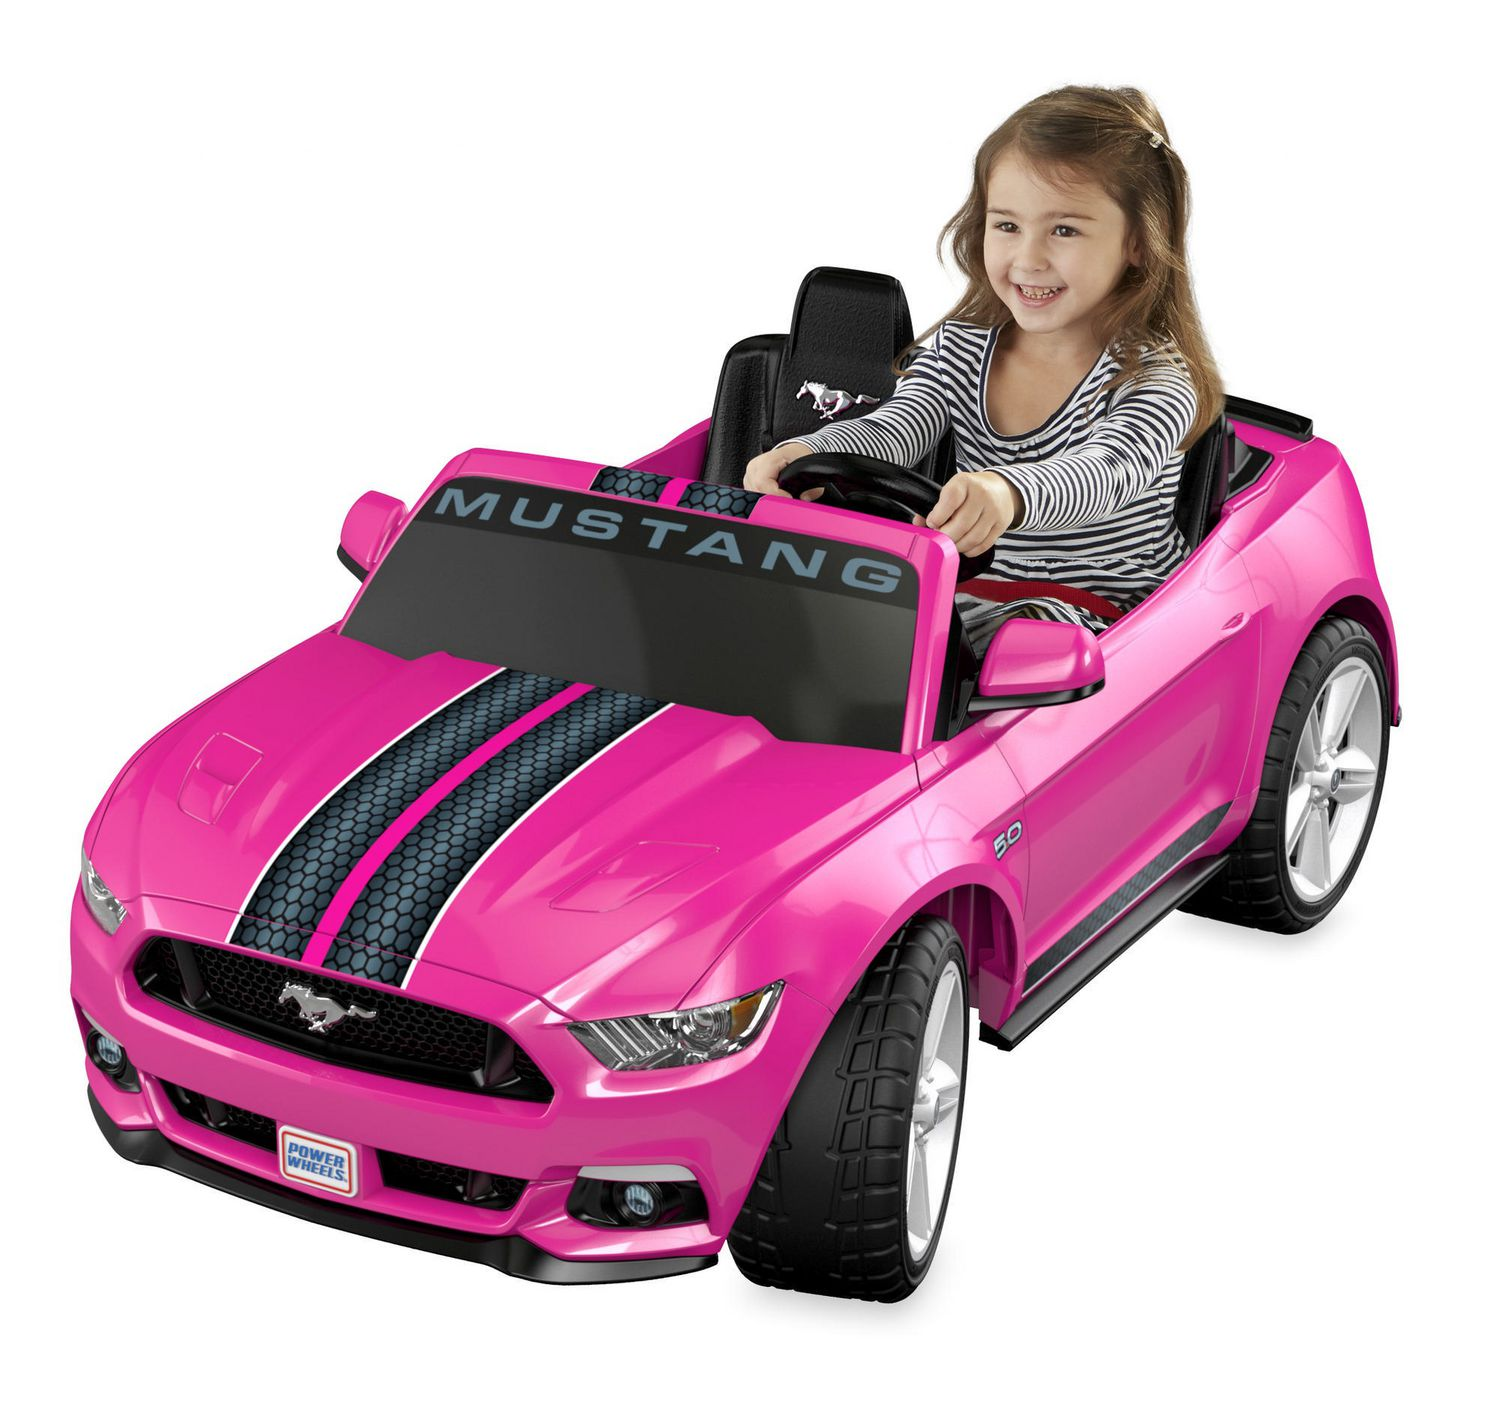 Power wheels smart drive mustang pink walmart canada